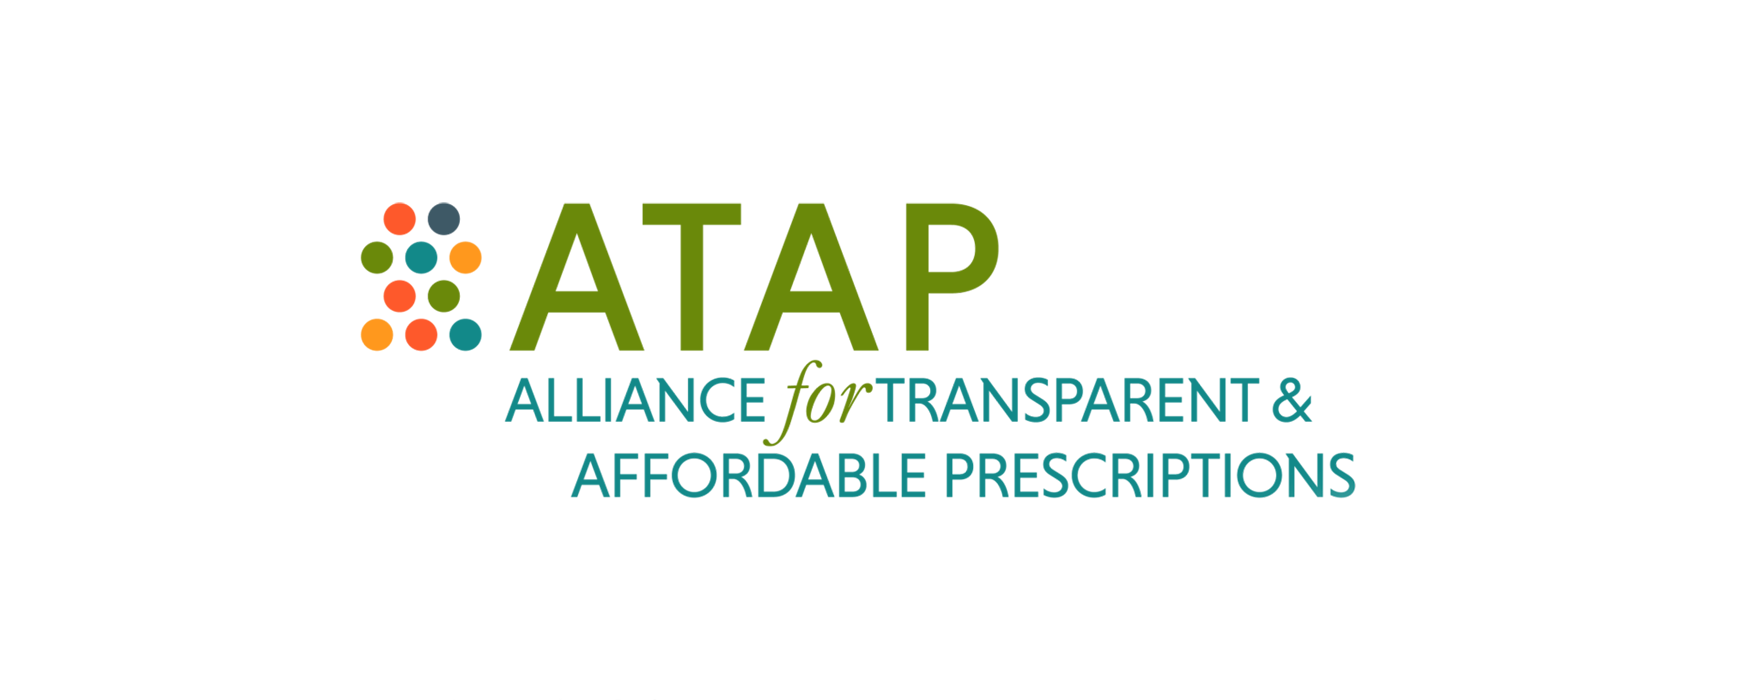 ATAP Applauds Virginia in Becoming First State to Pass PBM Legislation This Session